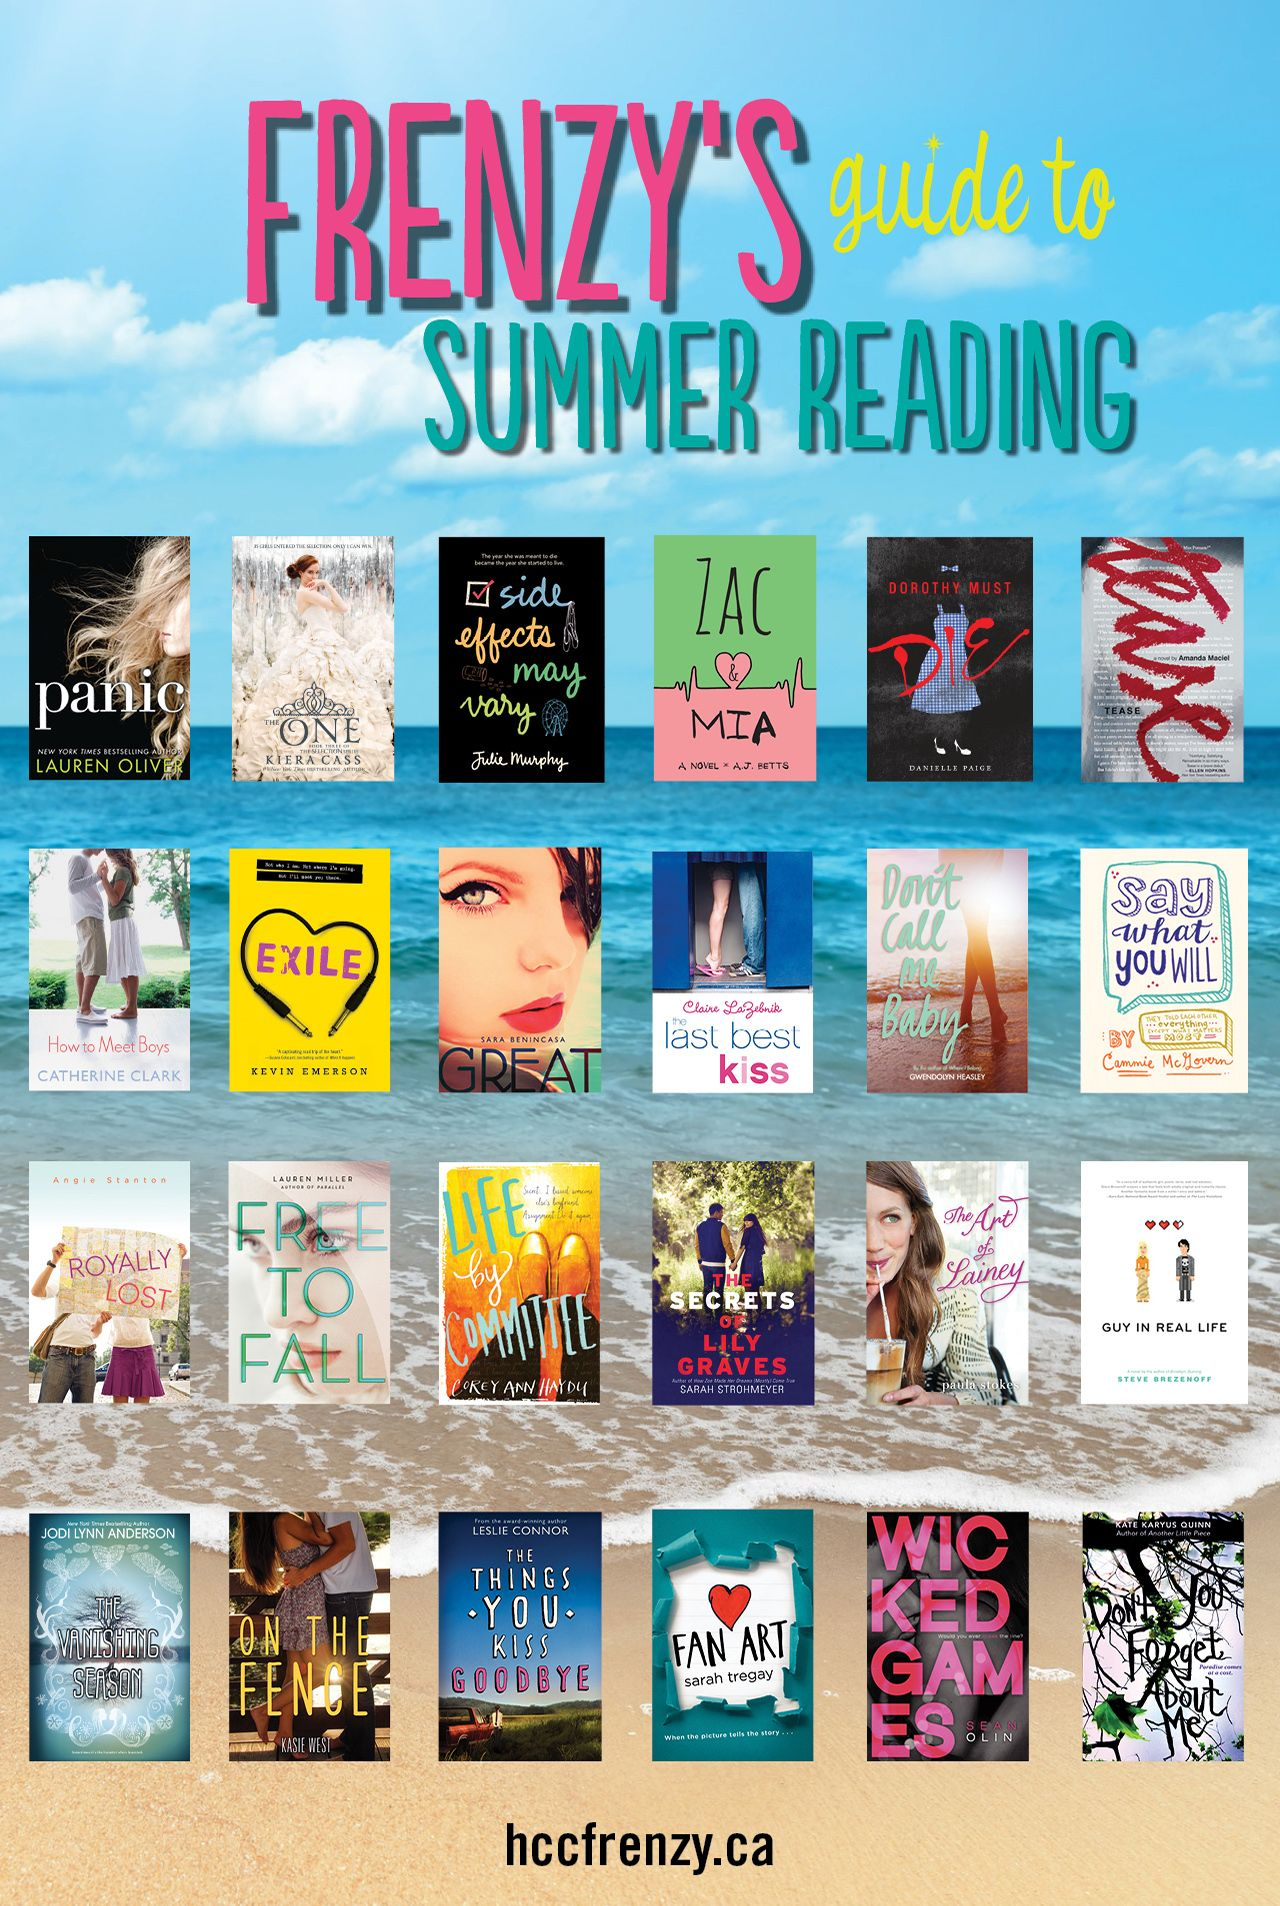 For Those Of You Looking For Great Books To Read This Summer Here Are Some Of Our Recommendations Panic Great Books To Read Books To Read Book Worth Reading